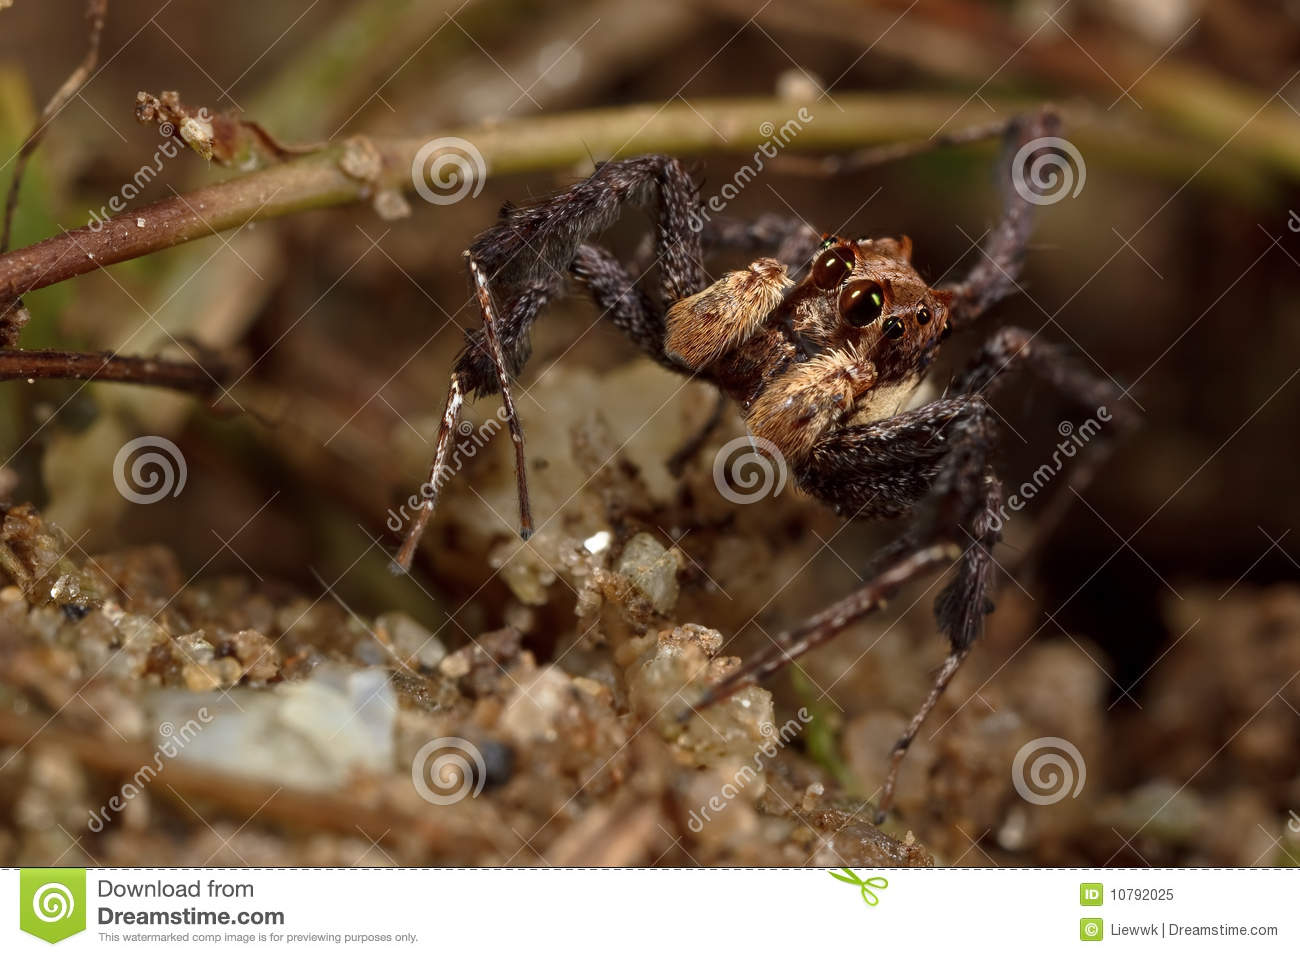 the portia spider a stealthy predator 5 the portia spider photo credit: imgur the portia spider, belonging to a group of sly and clever jumping spiders, is probably one of the most manipulative arachnids around.